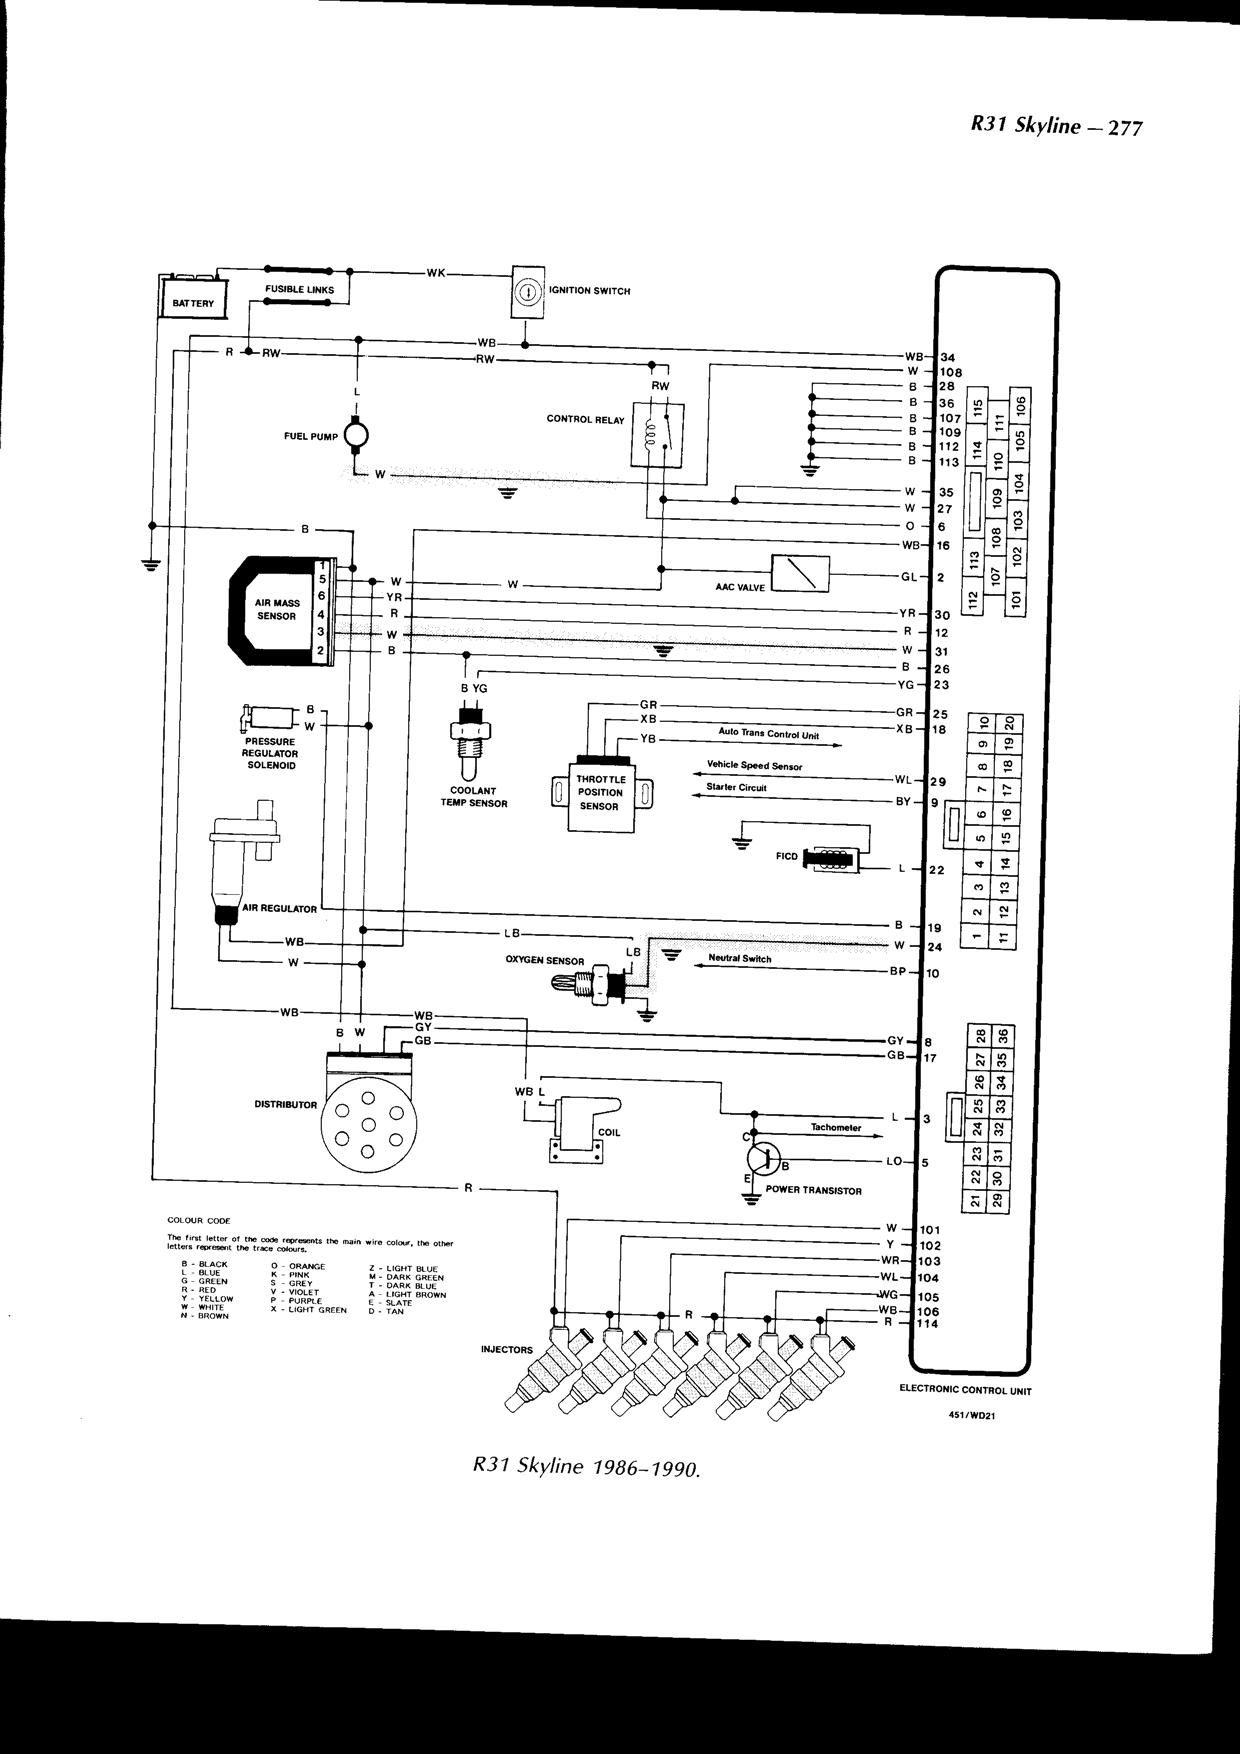 nissan 1400 electrical wiring diagram nissan nissan electrical nissan 1400 electrical wiring diagram [ 1240 x 1754 Pixel ]